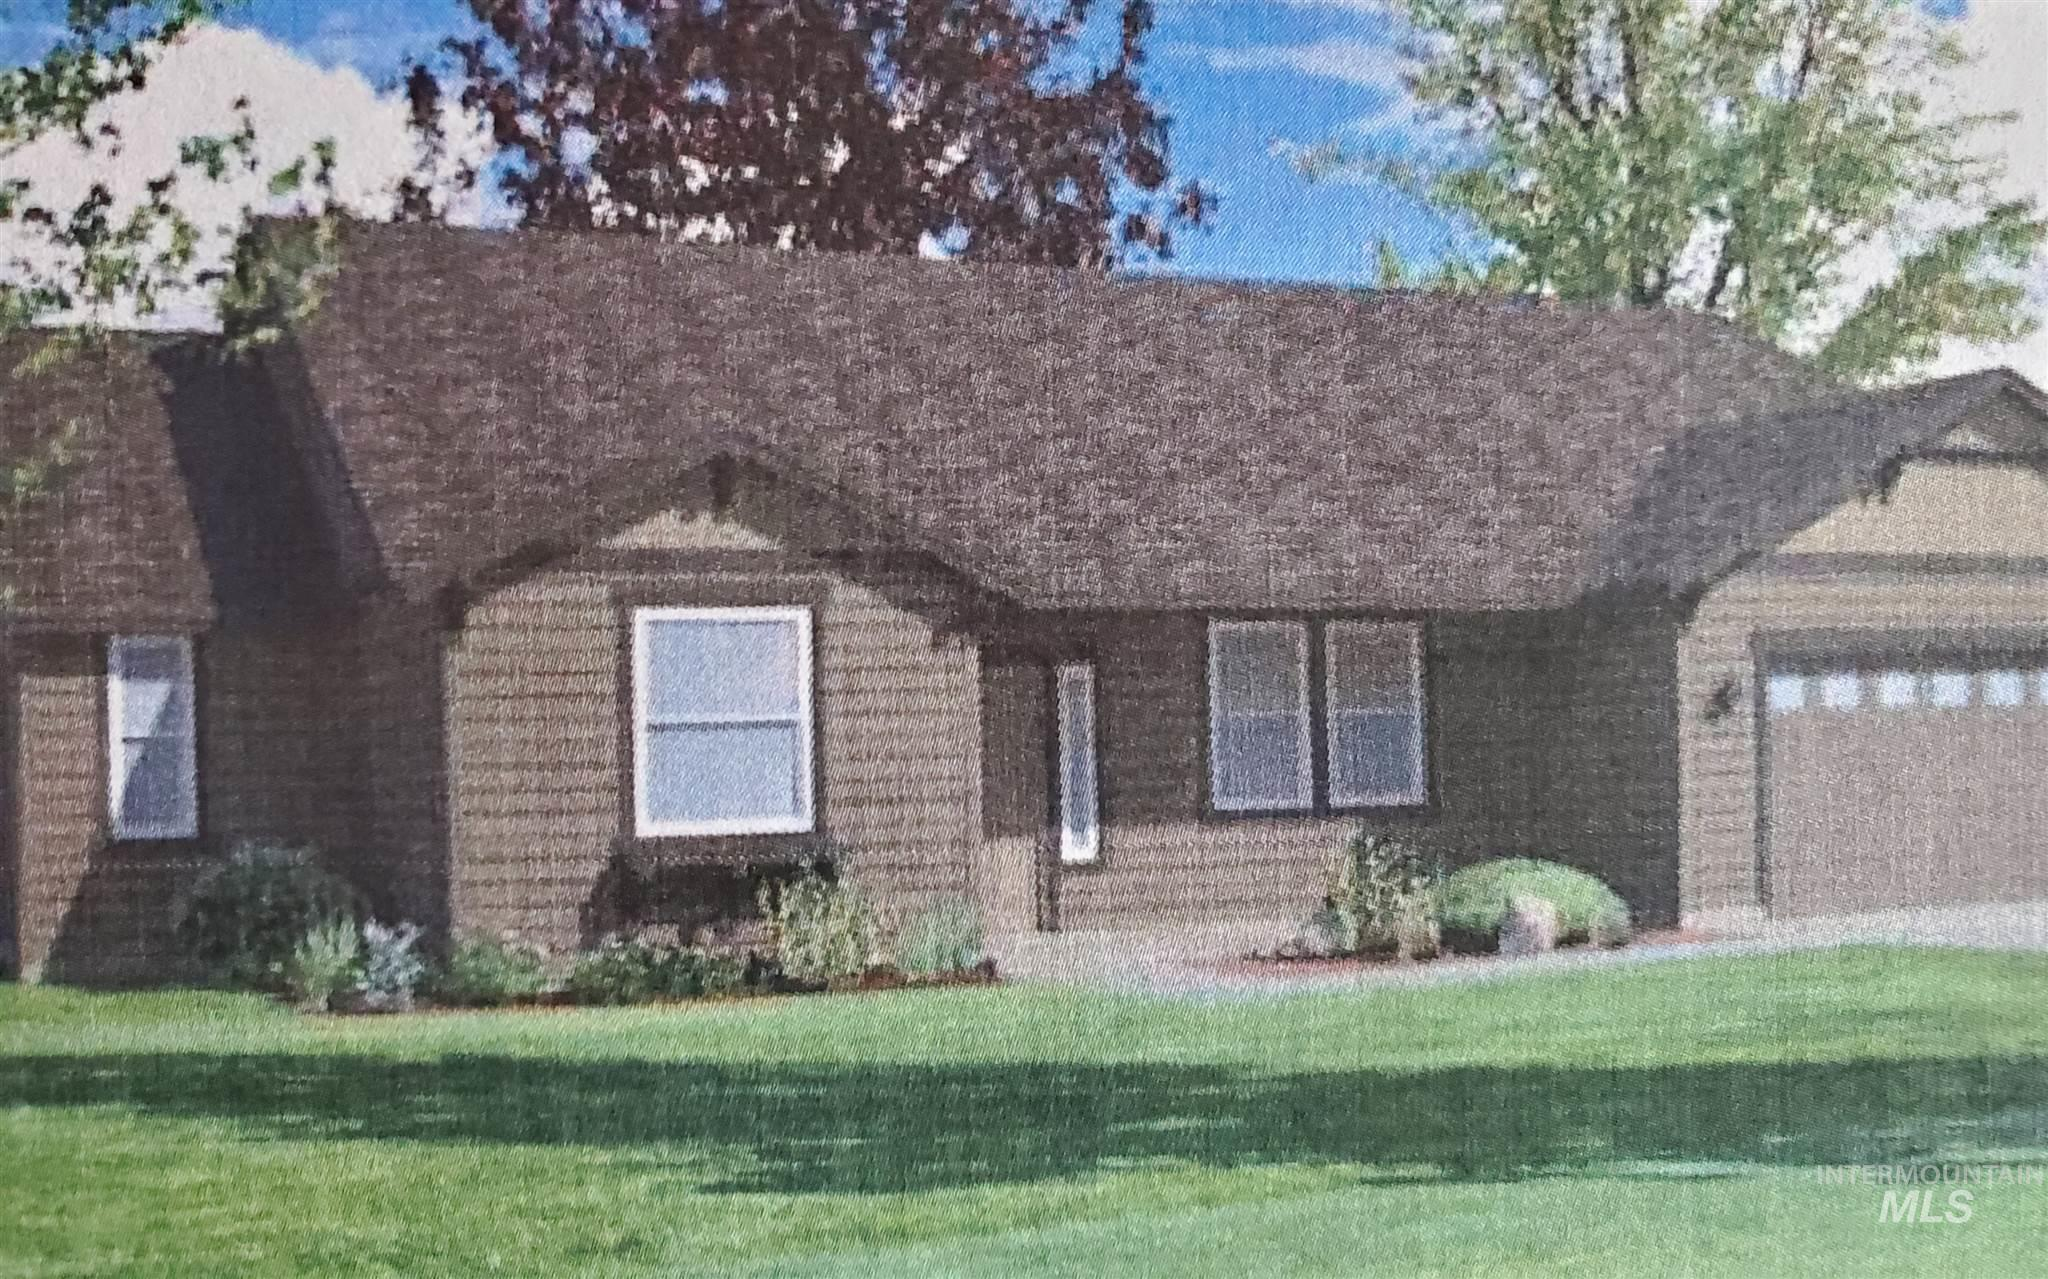 2531 Mariposa Ct Property Photo - Emmett, ID real estate listing